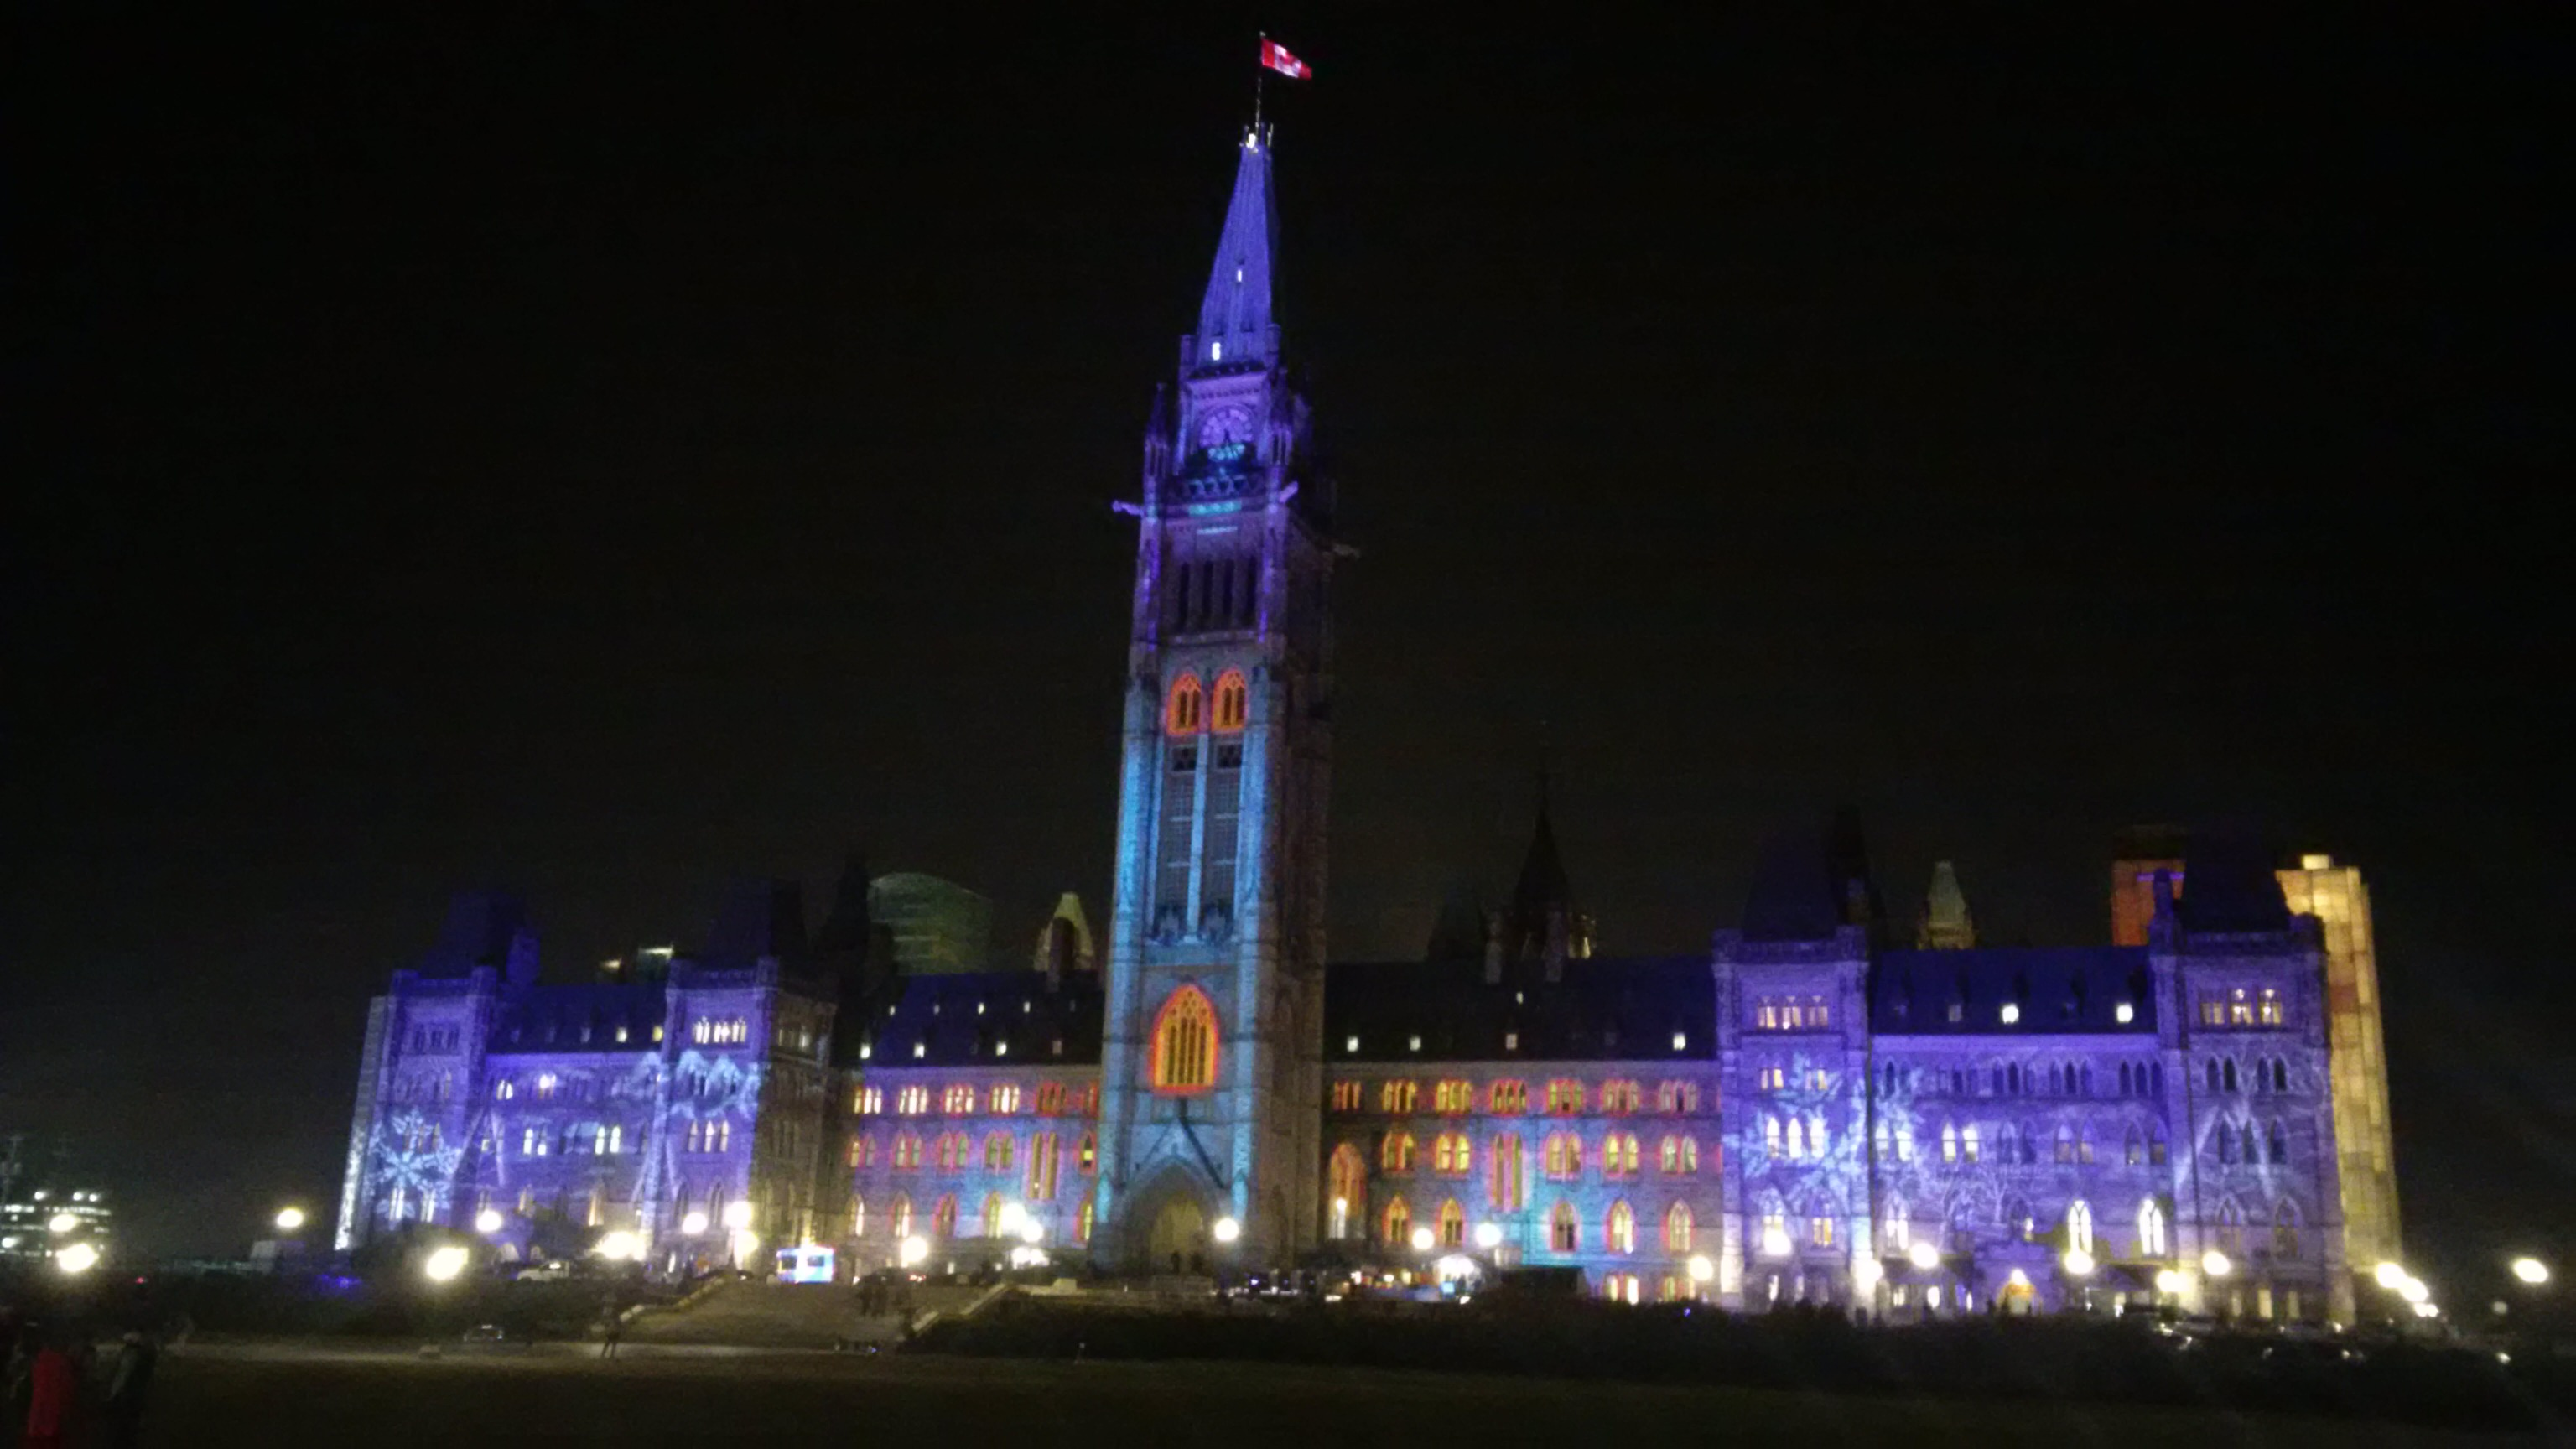 Centre Block on Parliament Hill lit up during a night-time light show.